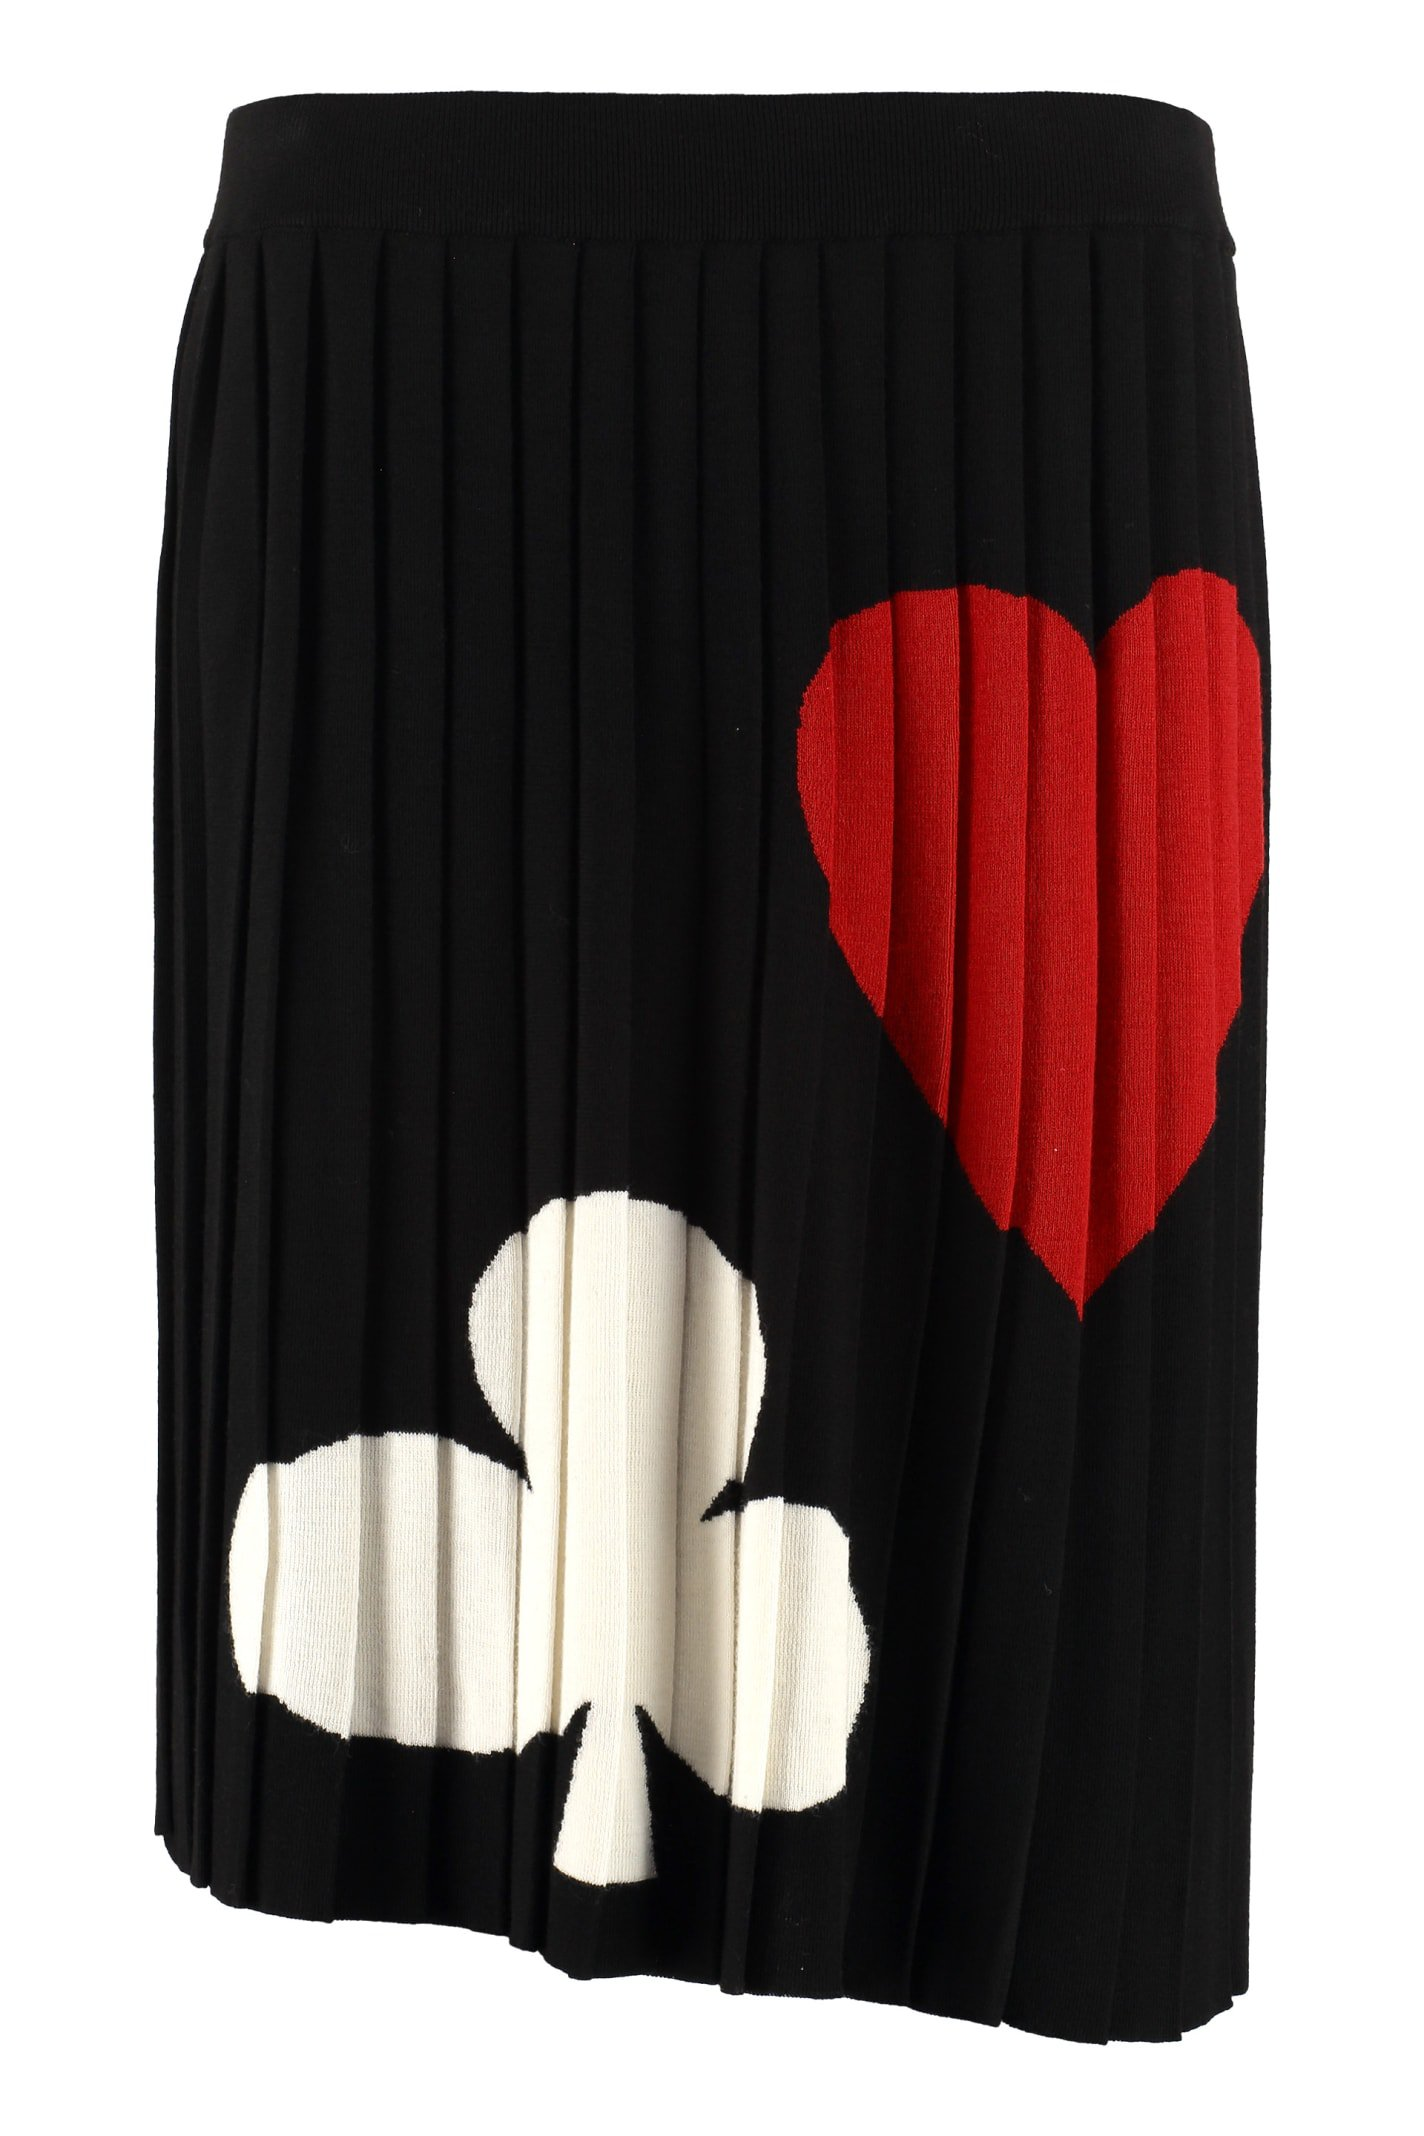 Boutique Moschino Pleated Knitted Skirt